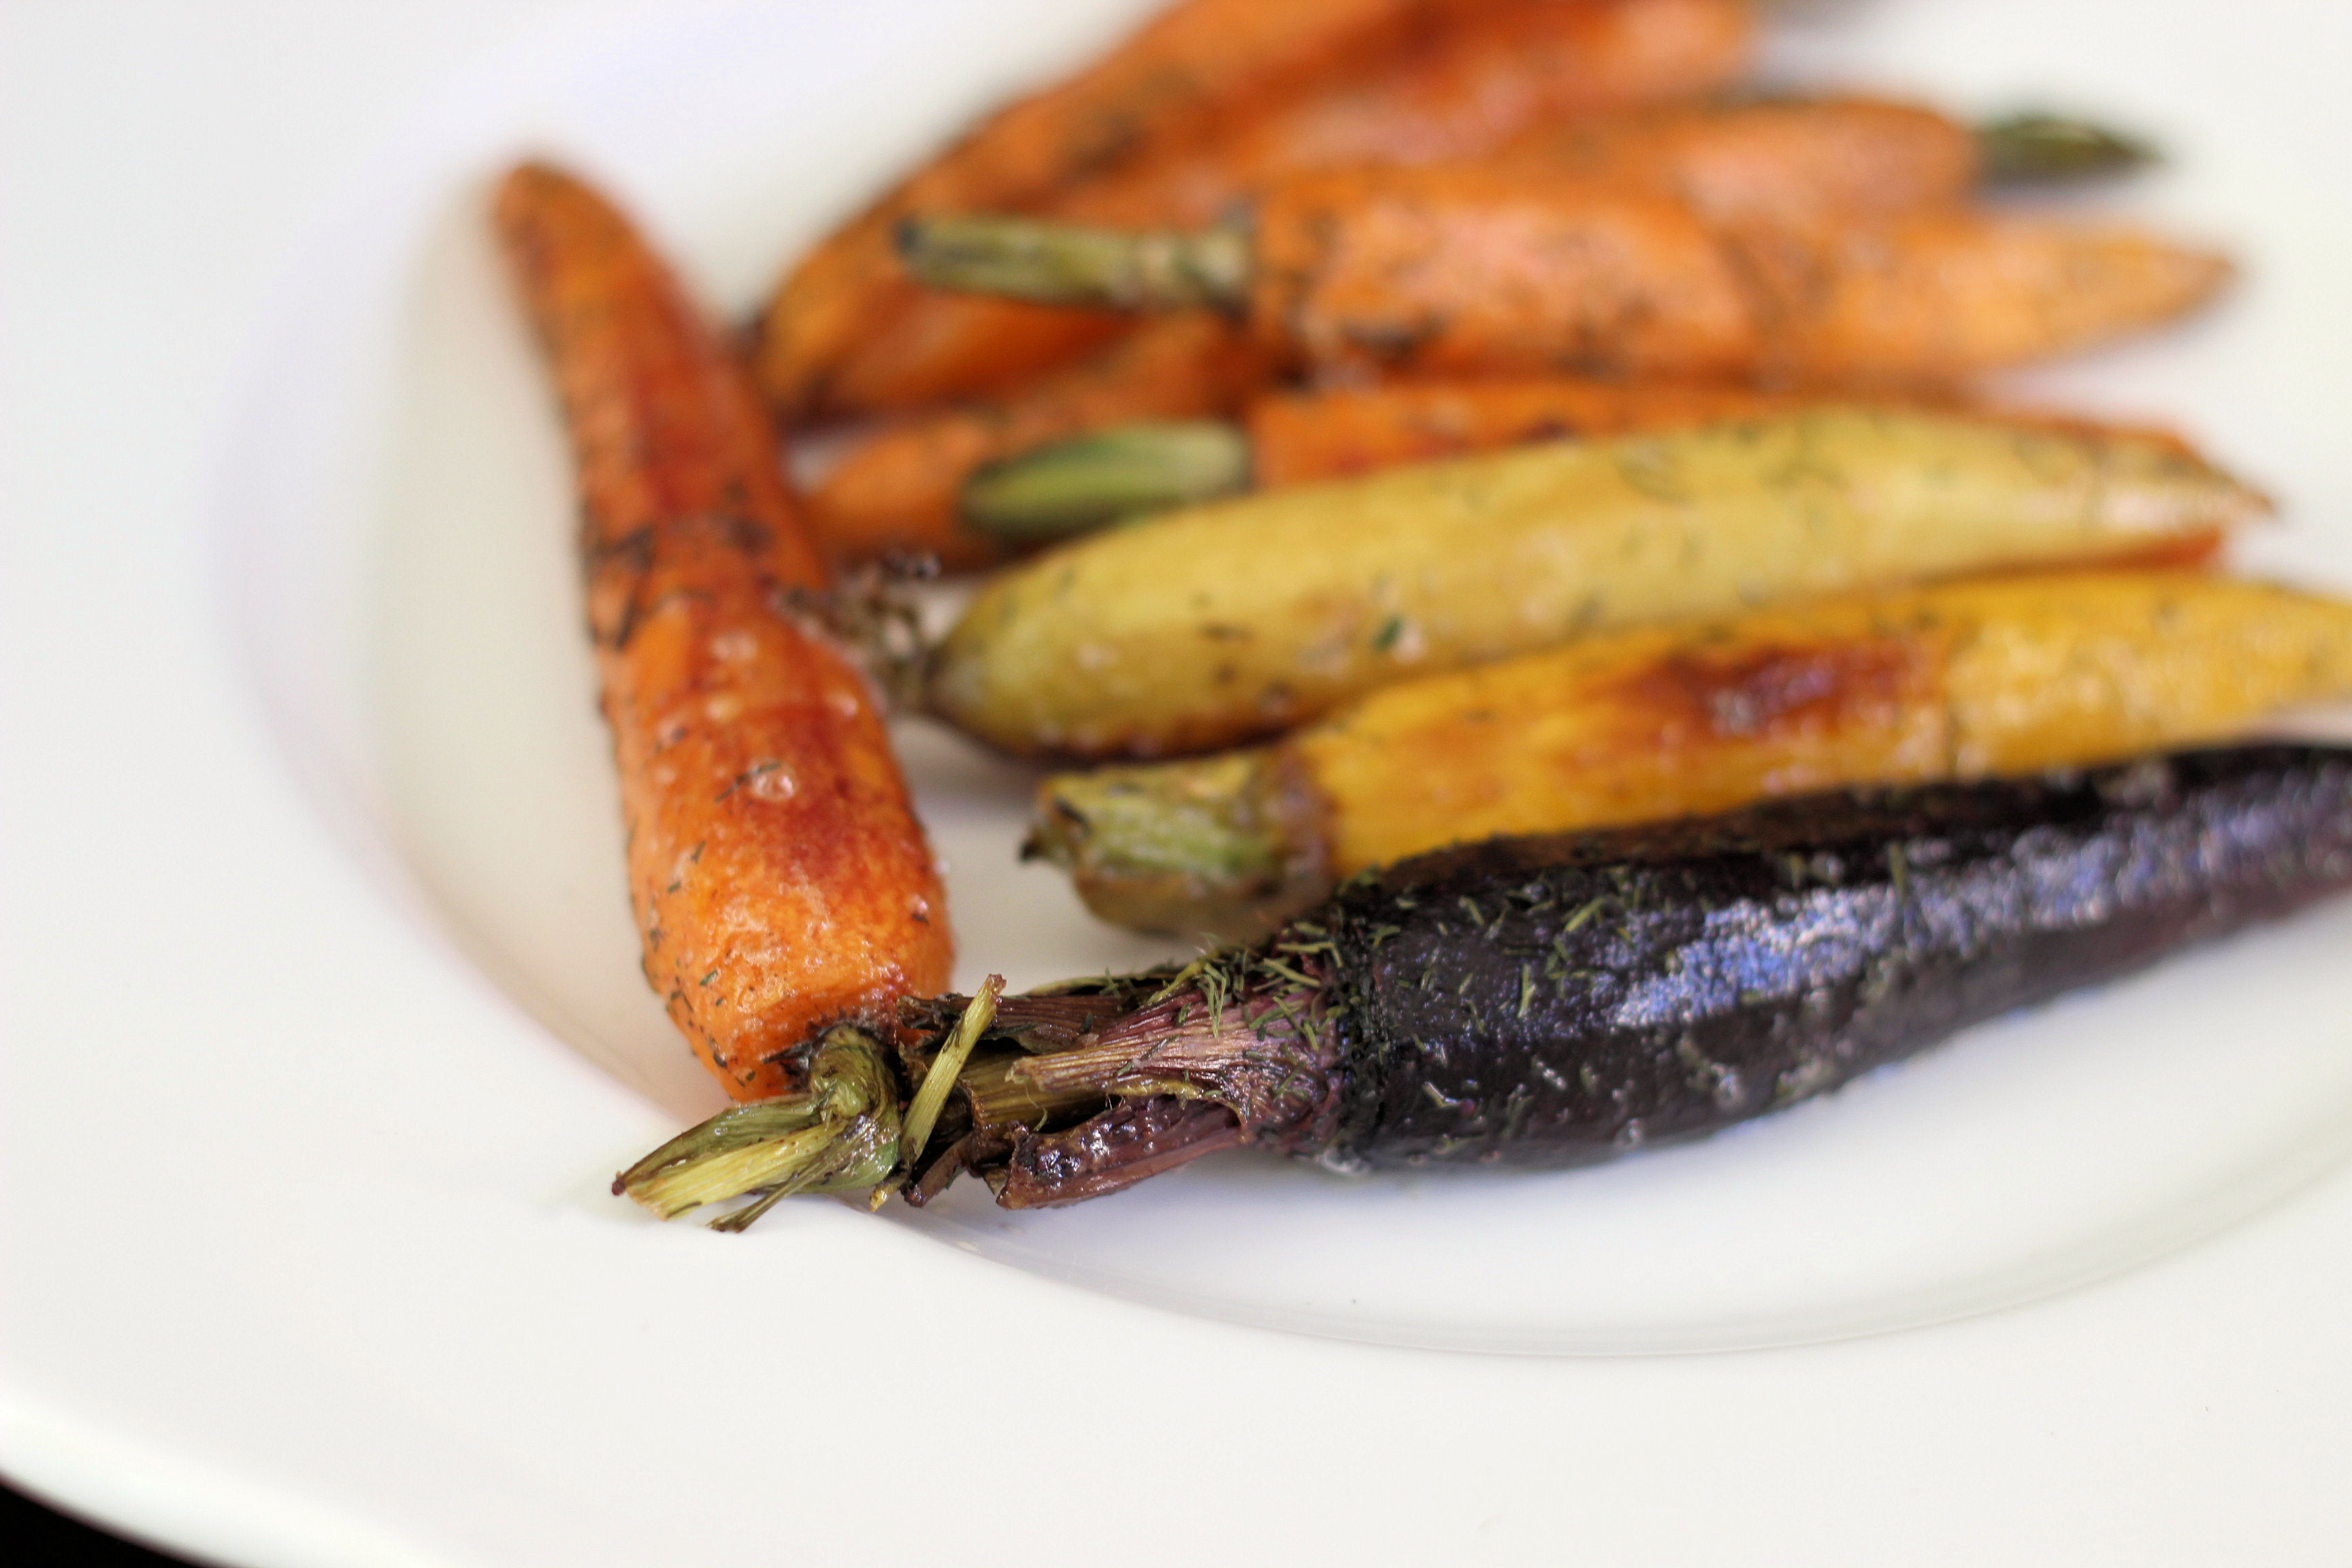 dill-glazed-roasted-cast-iron-skillet-carrots-easter-side